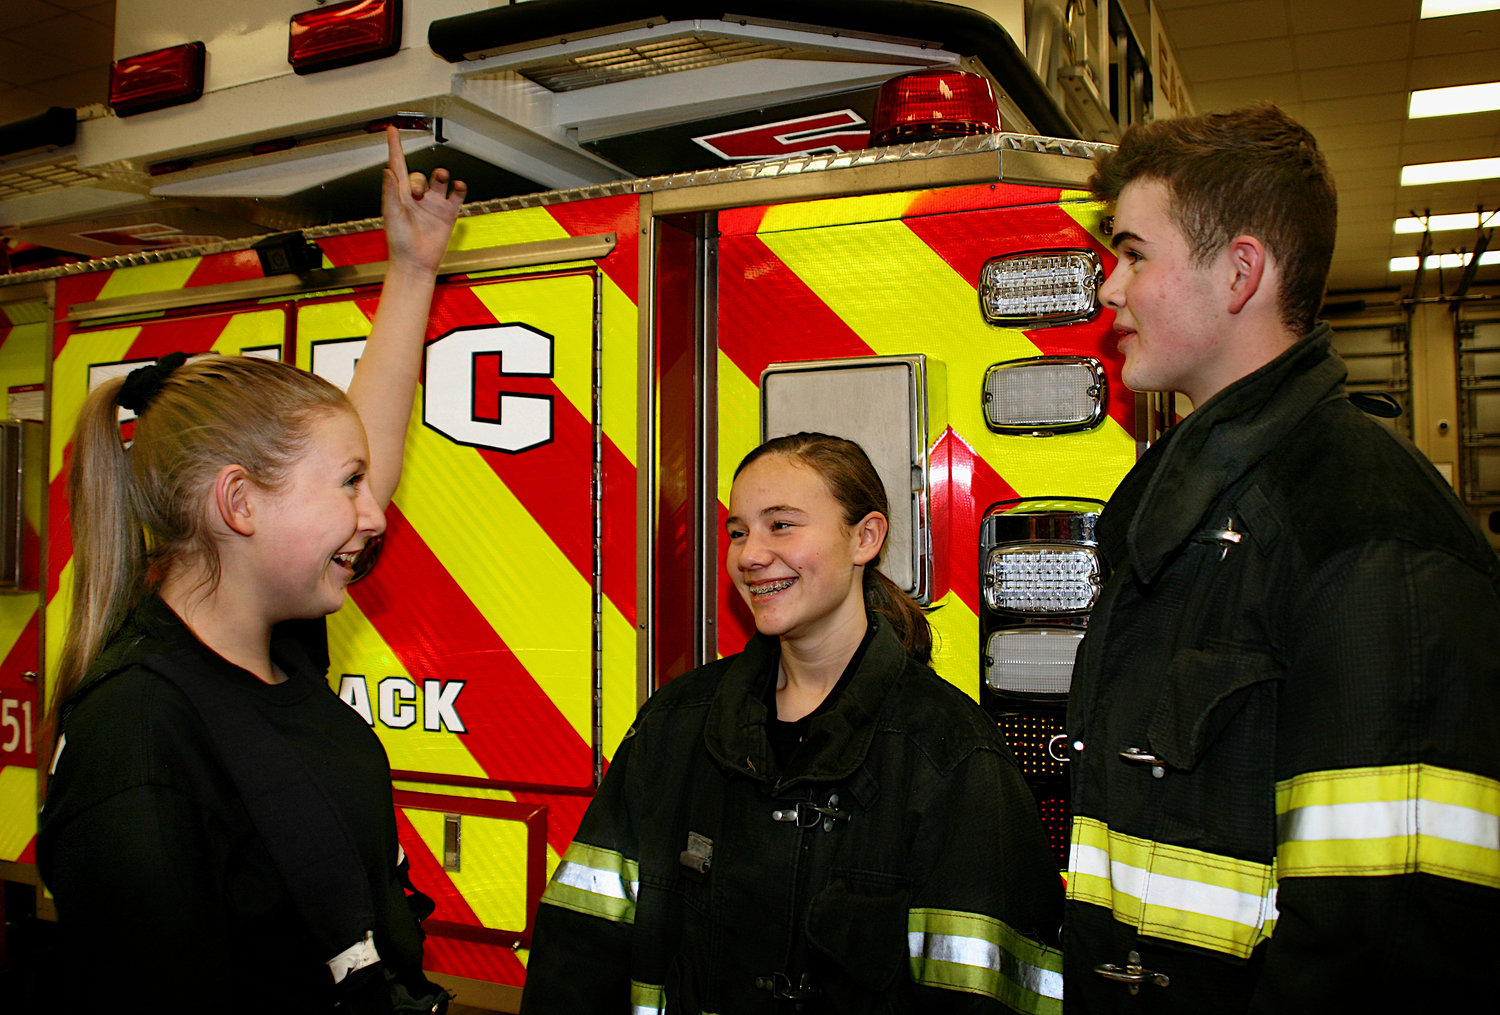 East Norwich Fire Dept. Juniors Kayla Cronin, far left, and Adrianna Wulffen took a break from the training  with Finn Klapproth, a junior visiting from Germany.